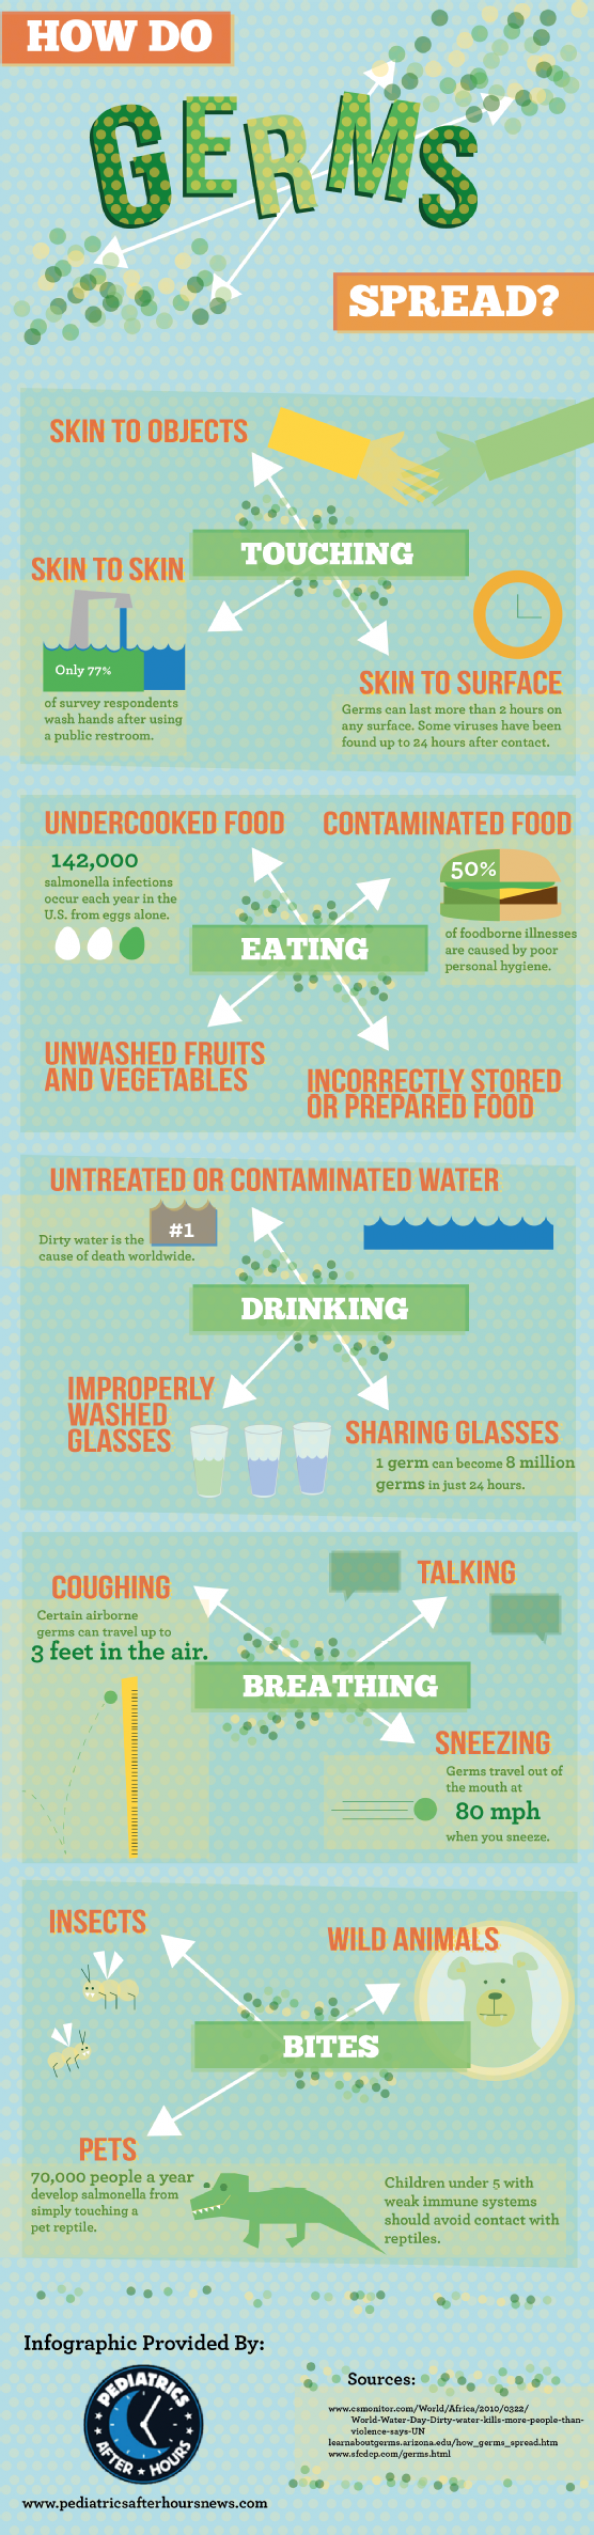 How Do Germs Spread? Infographic